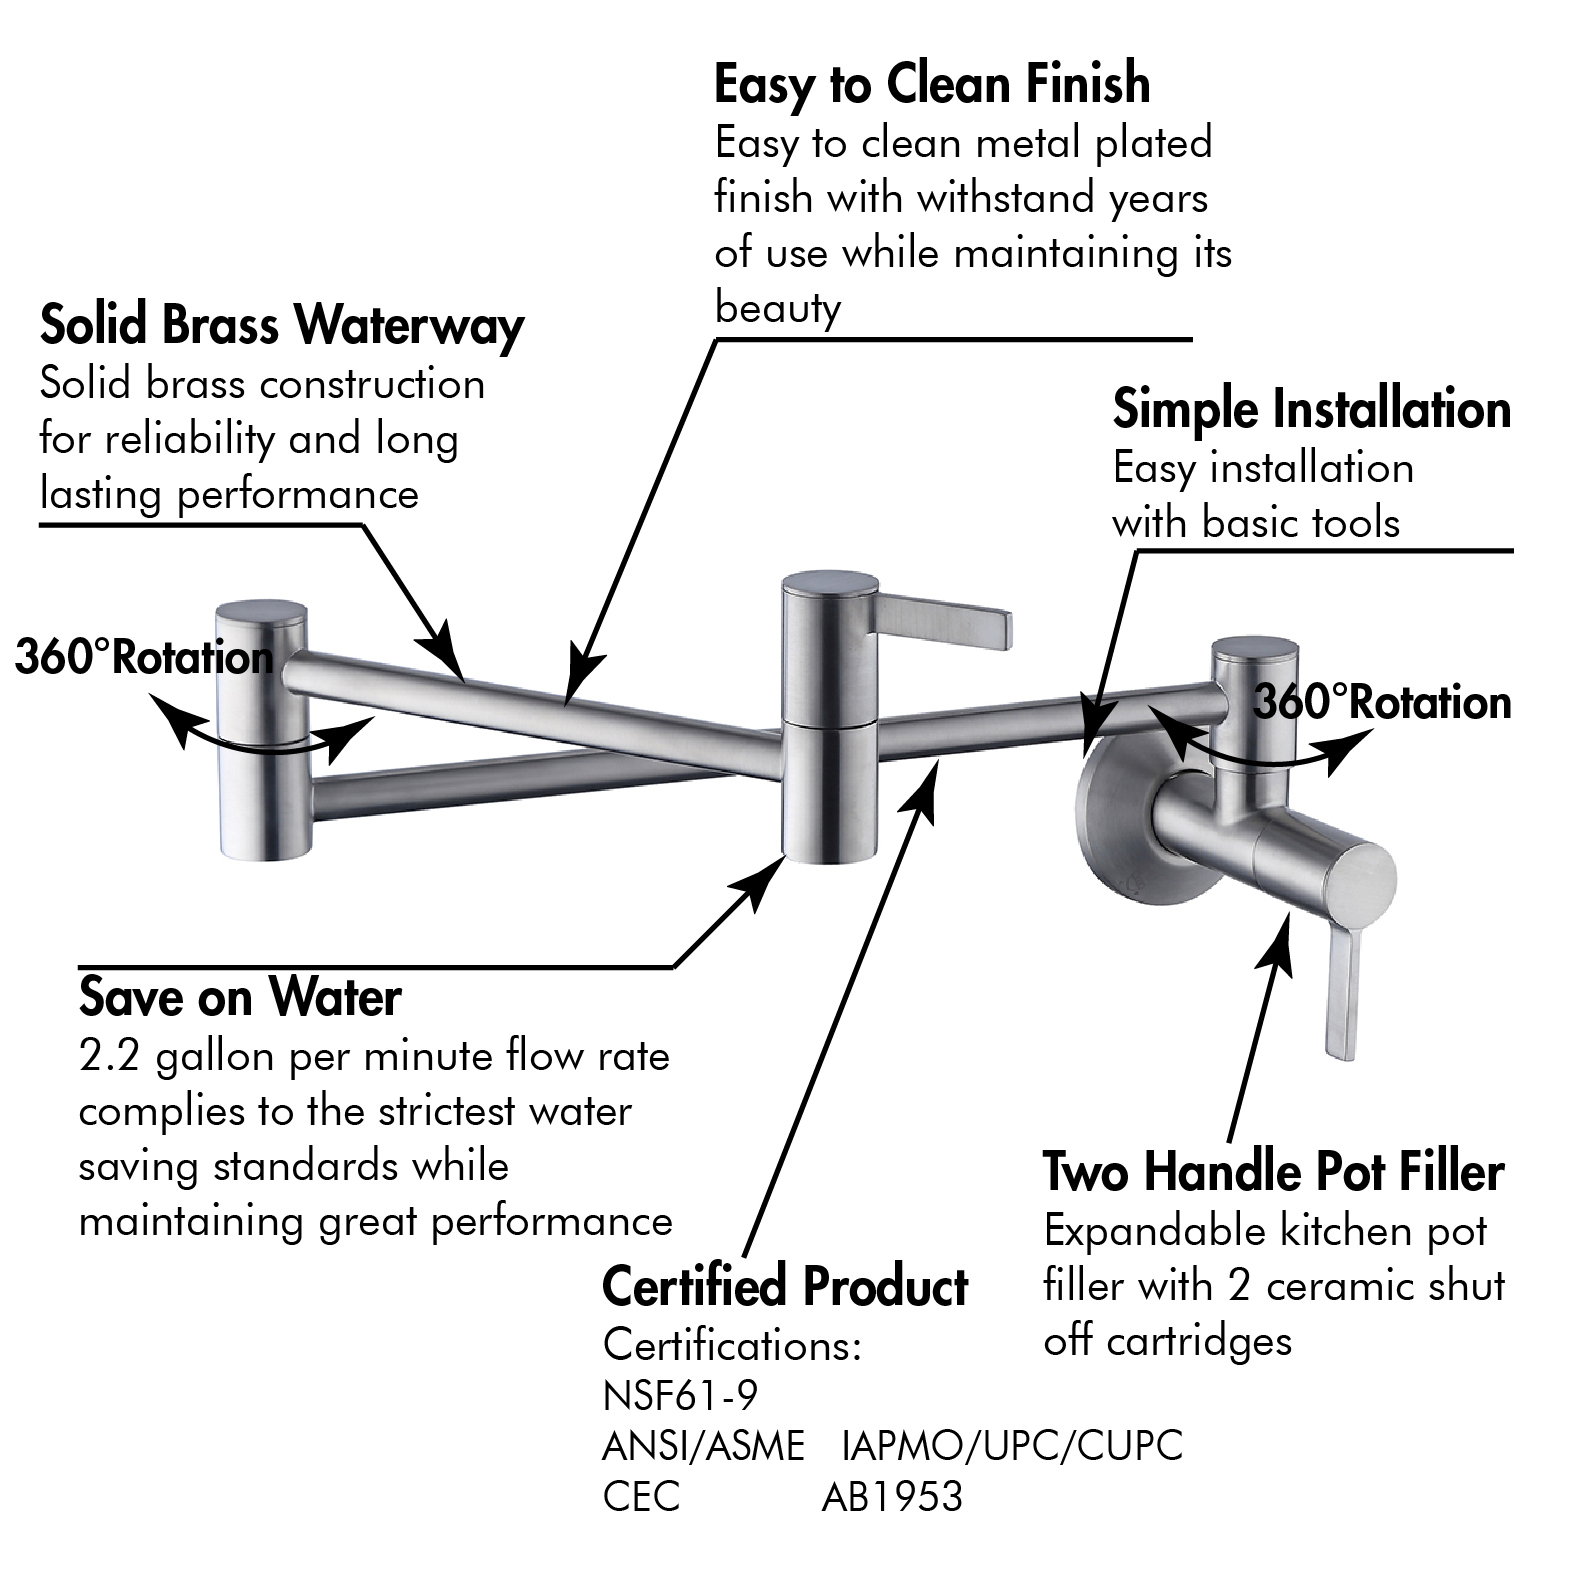 two handle pot filler faucet